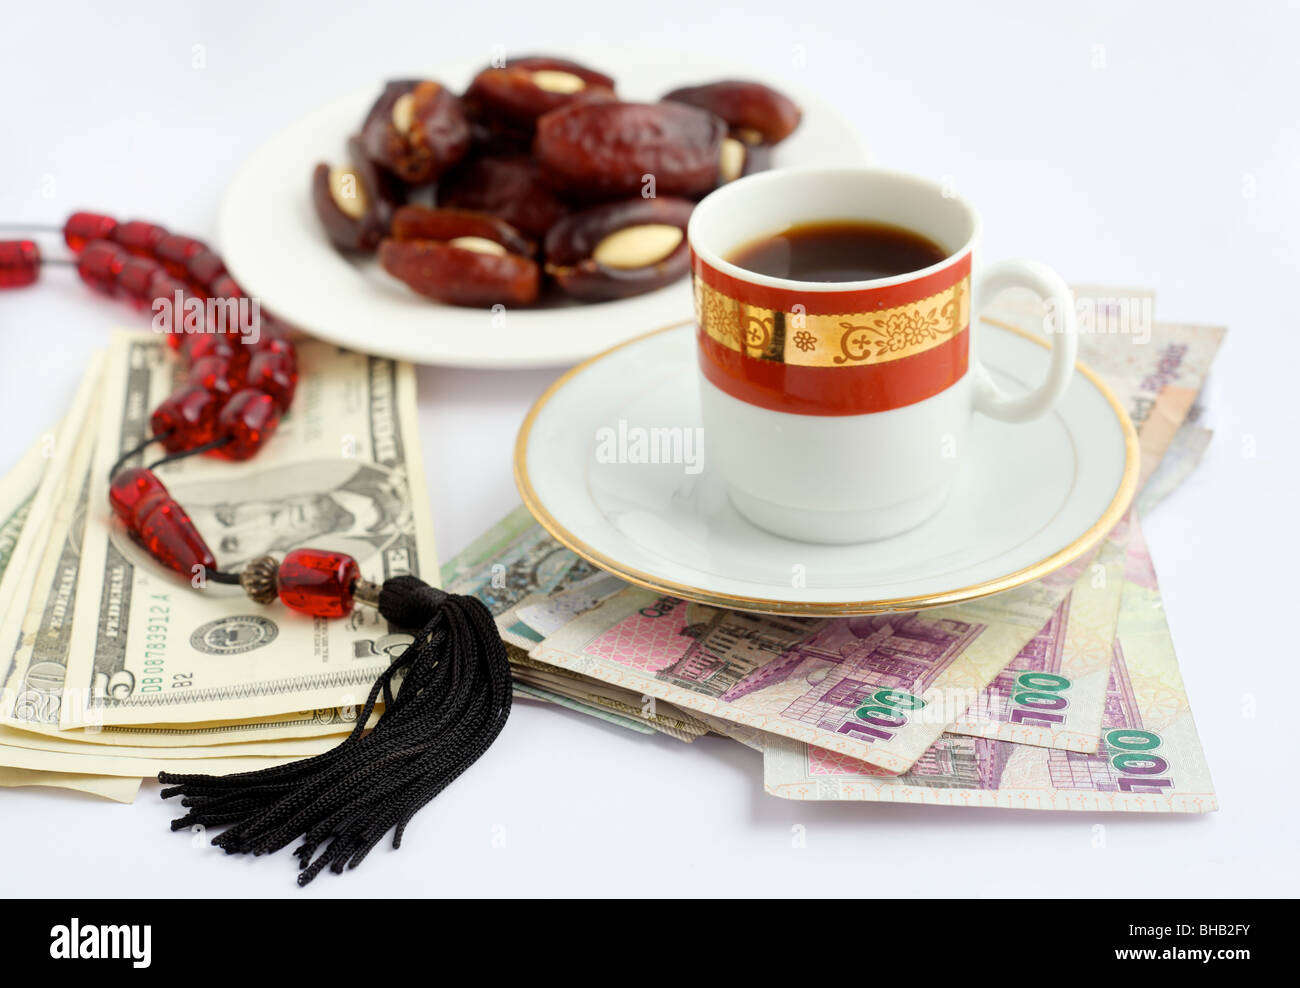 Coffee, dates stuffed with almonds and worry beads, on piles of Qatari Arab money and US dollars. Stock Photo